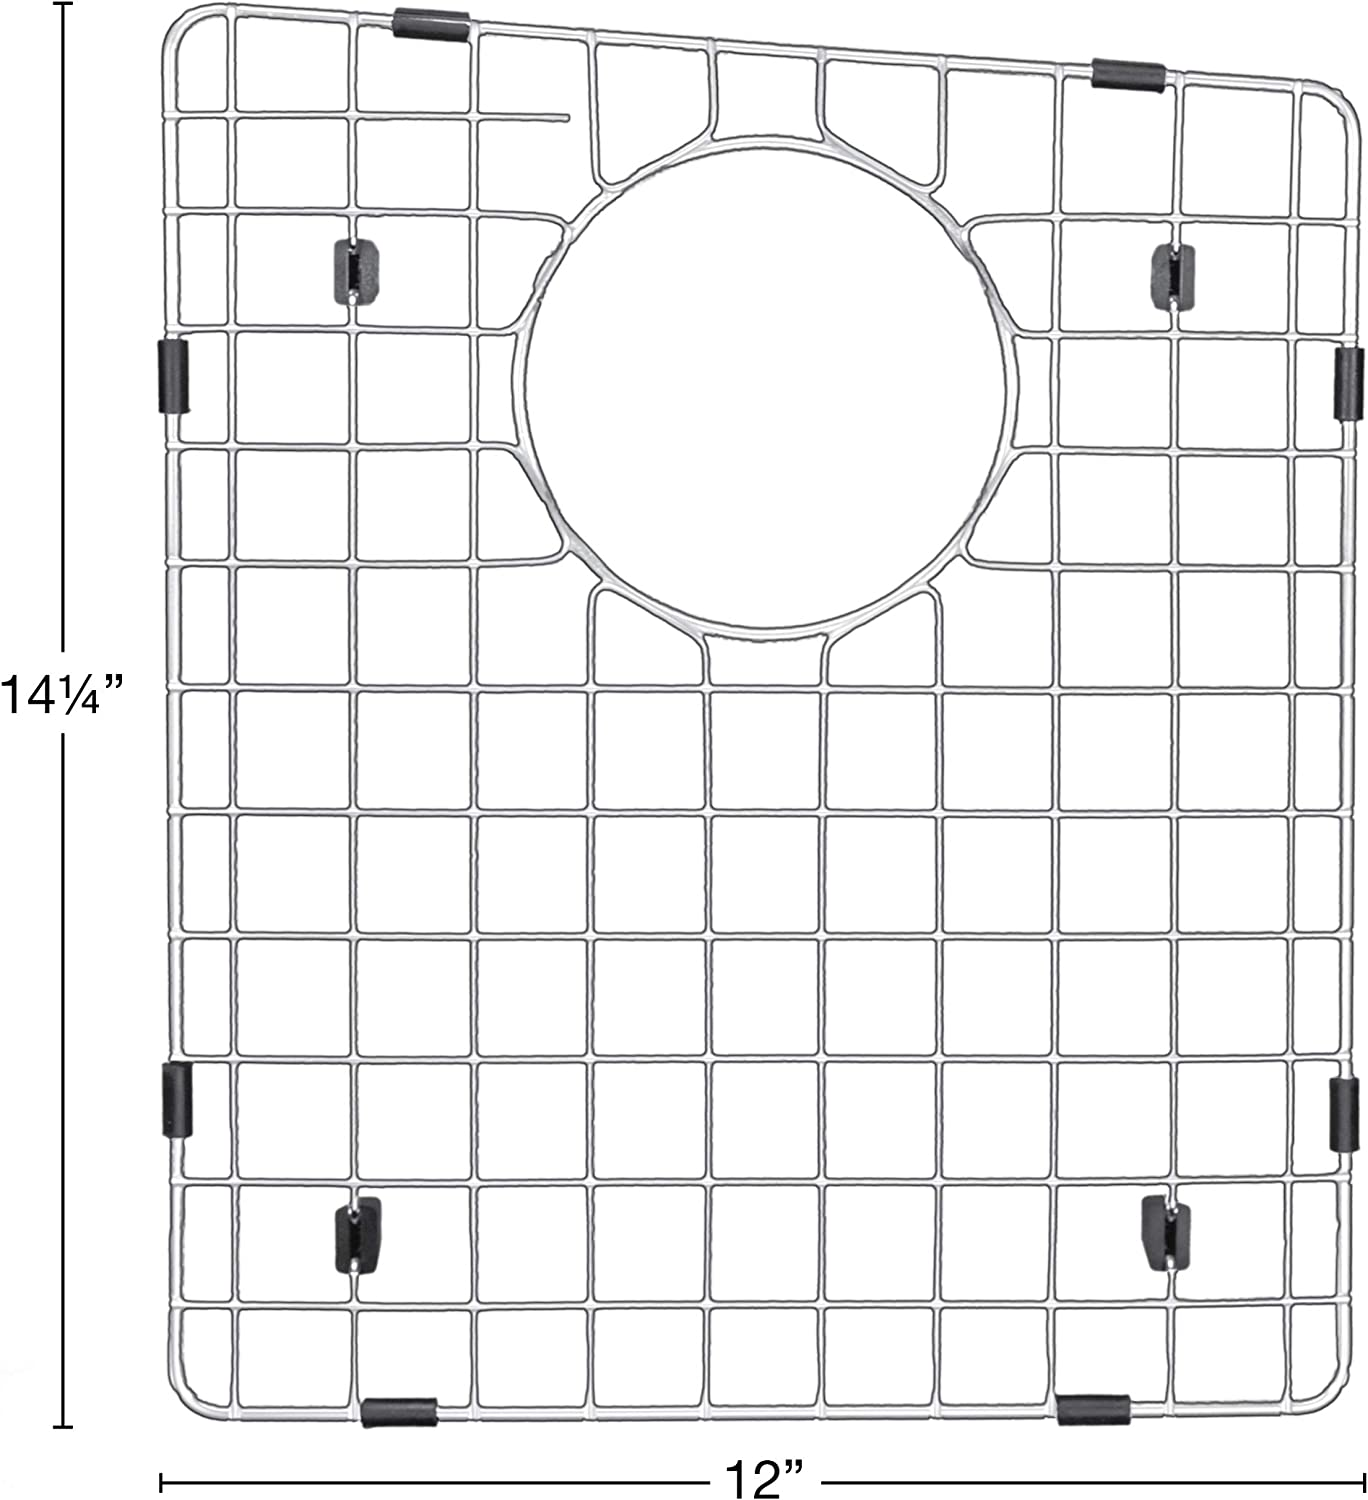 Left Karran Stainless Steel Bottom Grid 12 x 14-1//4 for QT-710 and QU-710